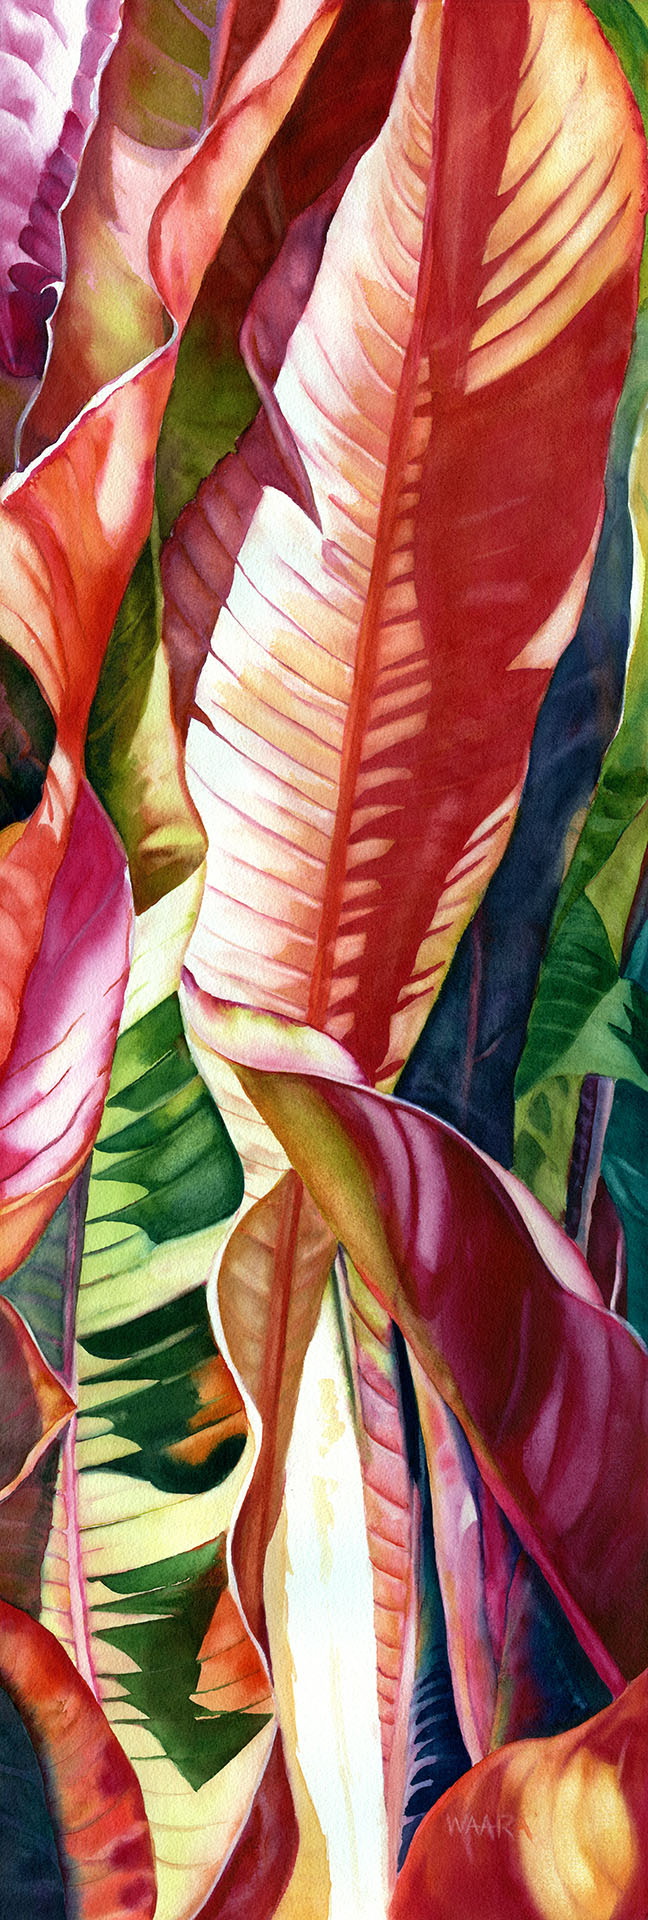 Haiku Banana Leaves watercolor painting